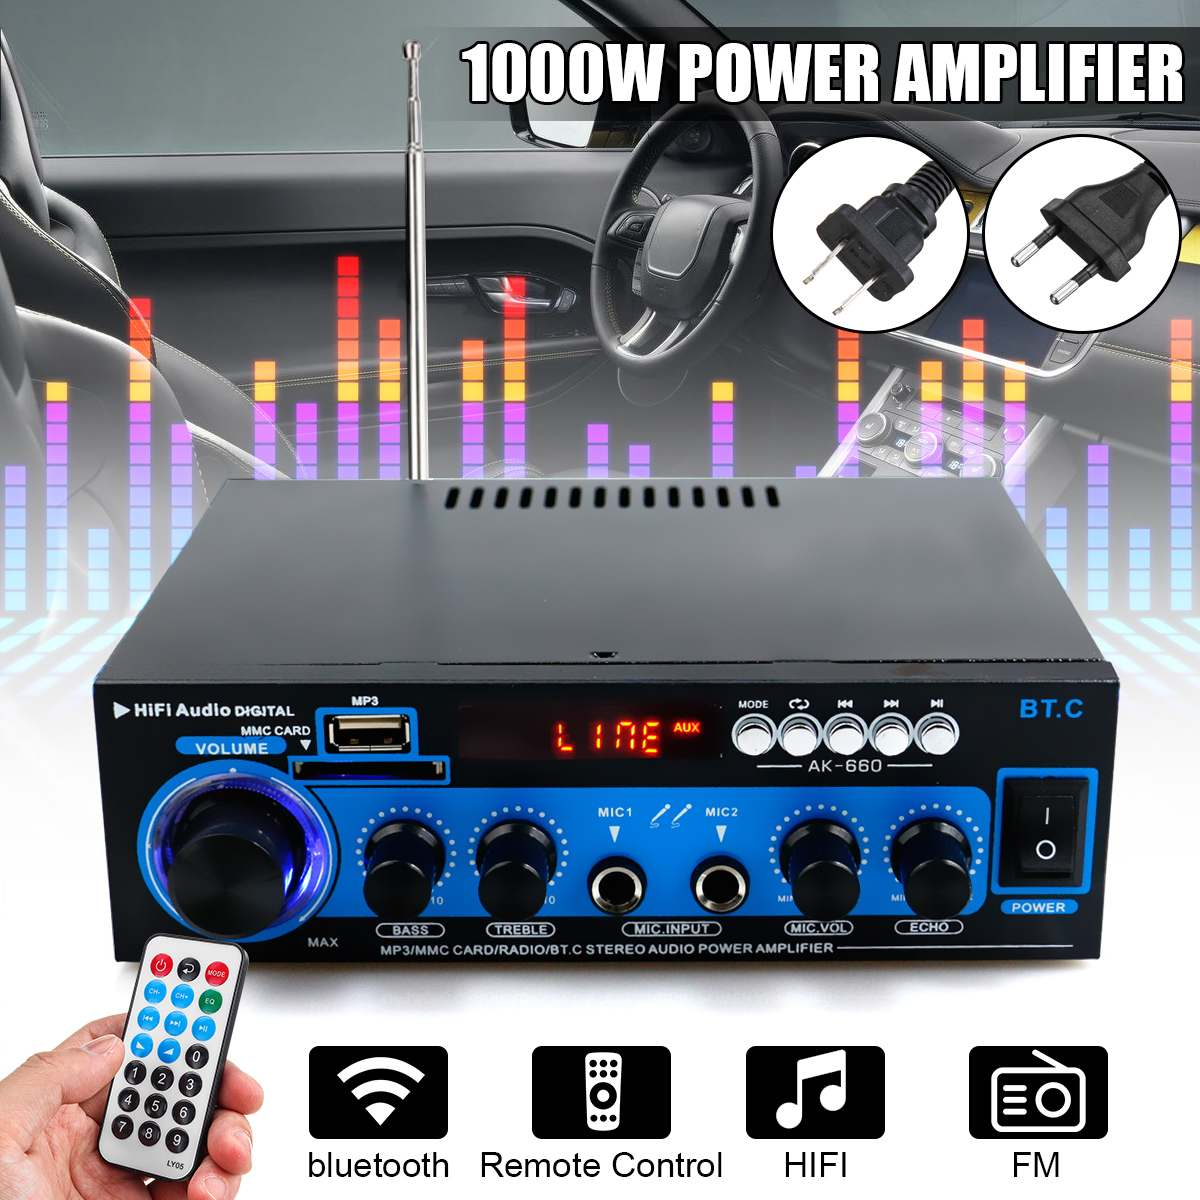 1000W 2CH HIFI Car Home Theater Amplifiers Stereo Audio Bluetooth FM Radio Power Home Amplifiers Subwoofer With Remote Control